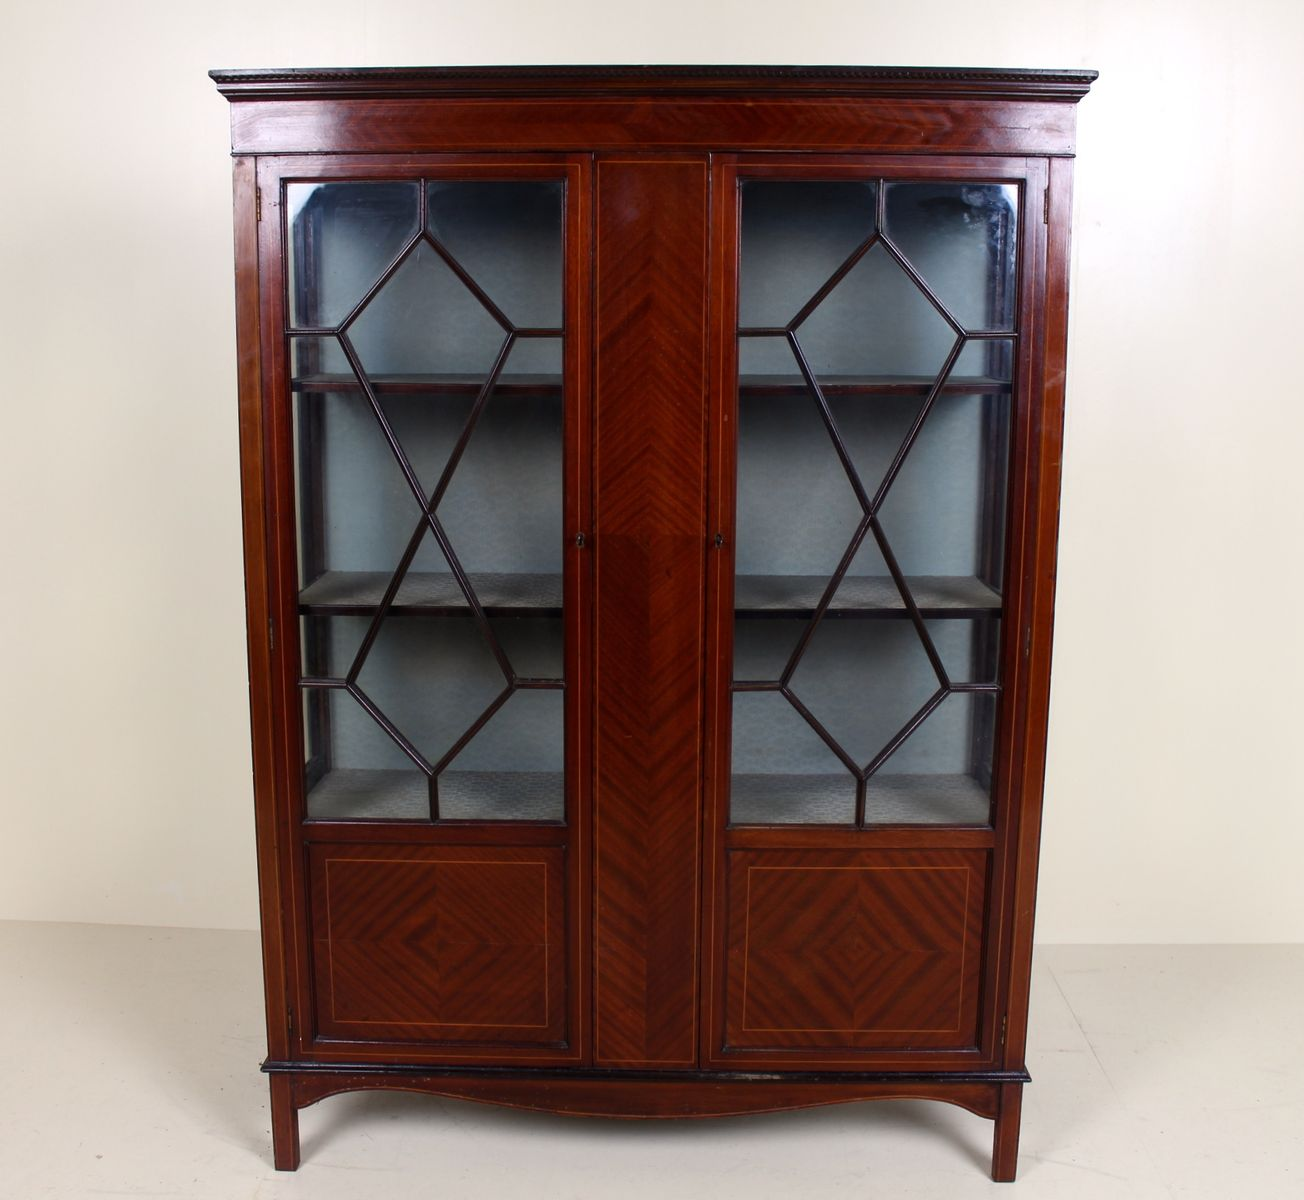 Antique Inlaid Mahogany & Astragal Glass Display Cabinet - Antique Inlaid Mahogany & Astragal Glass Display Cabinet For Sale At